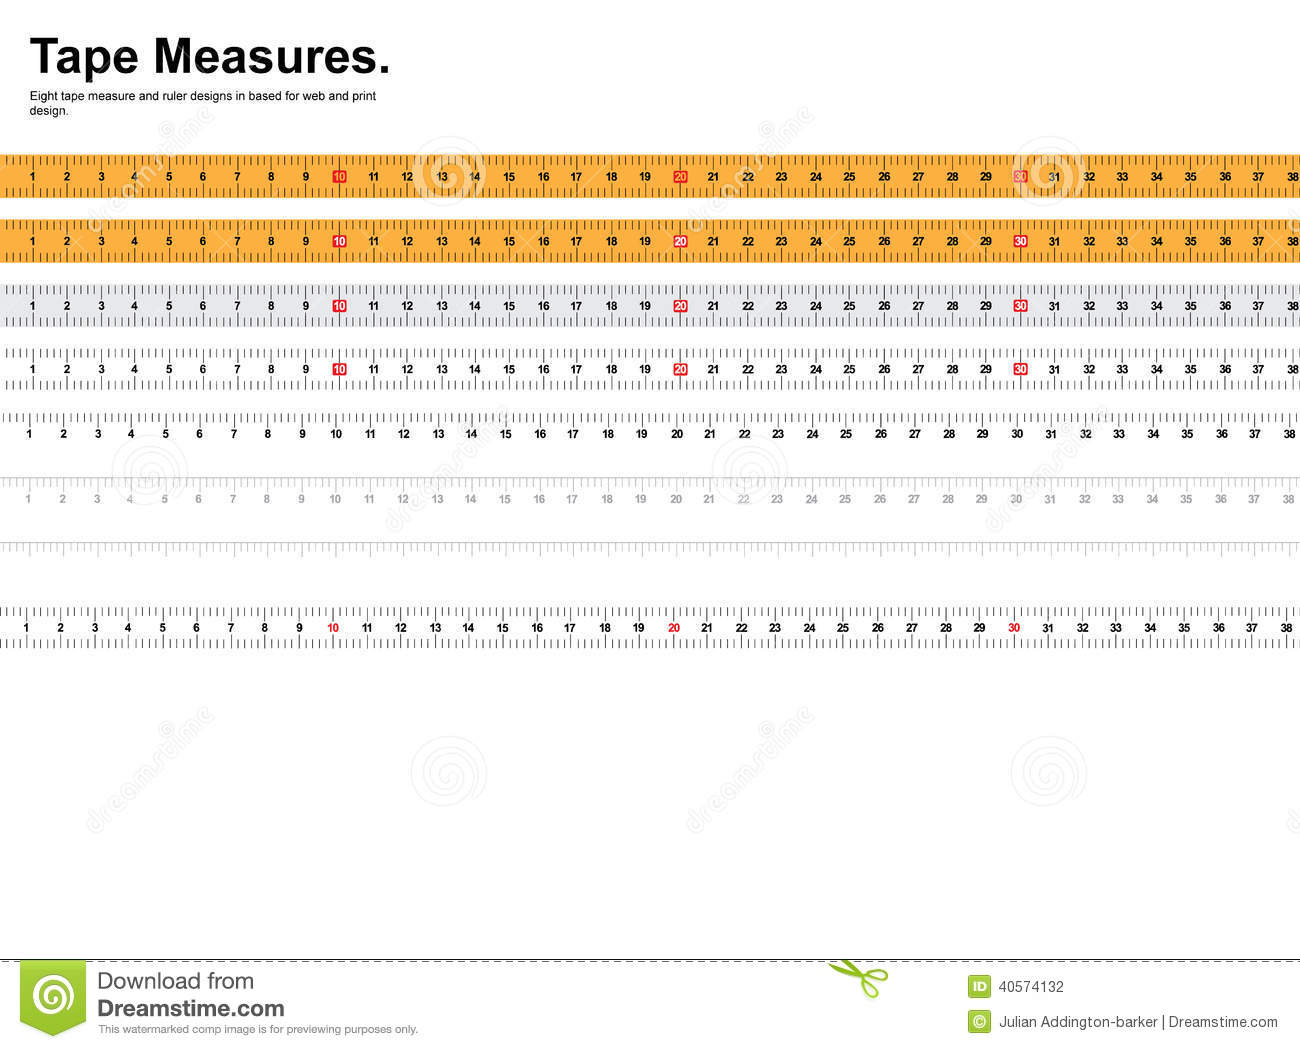 This is a graphic of Influential Printable Measuring Tape